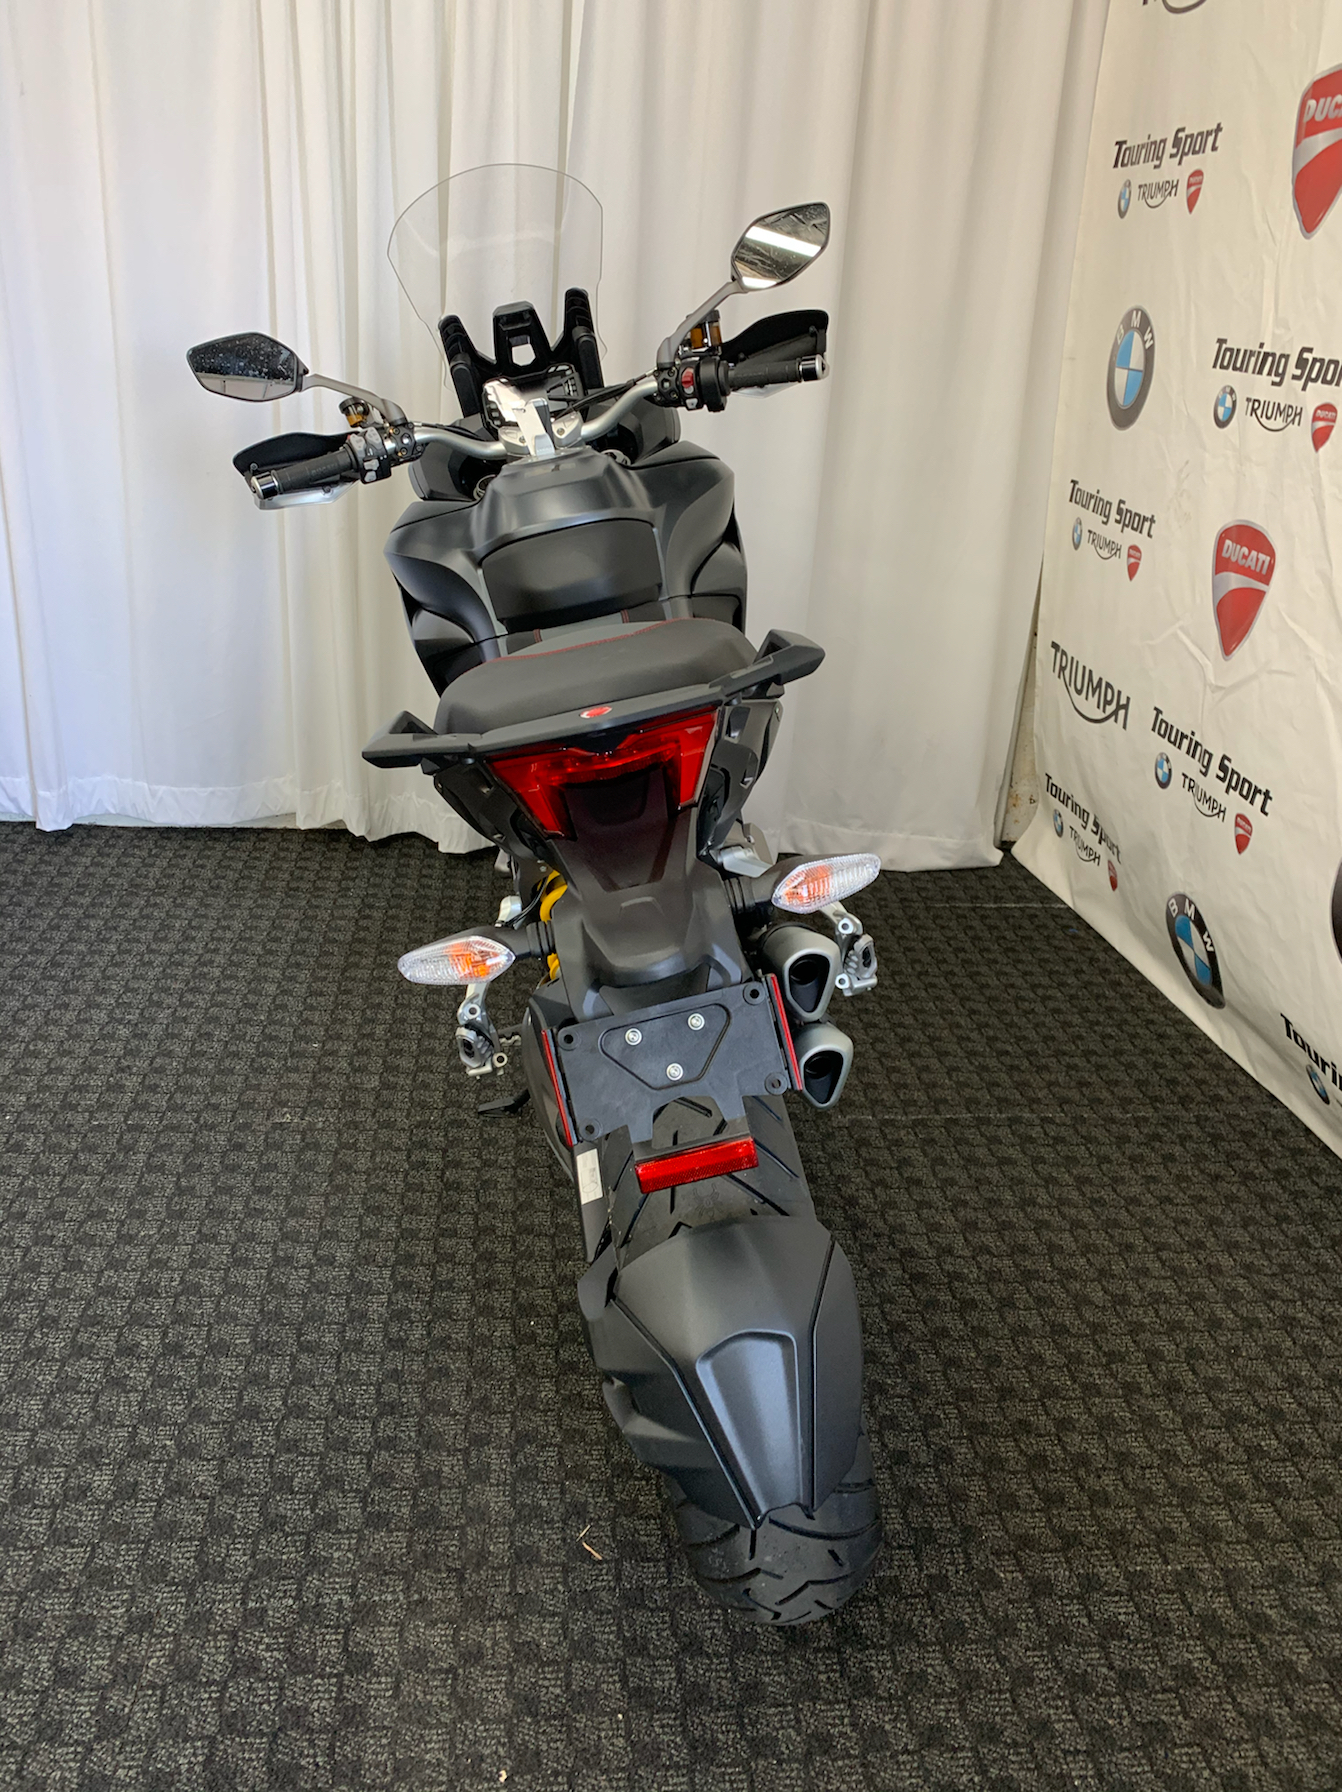 2019 Ducati Multistrada 1260 S in Greenville, South Carolina - Photo 4